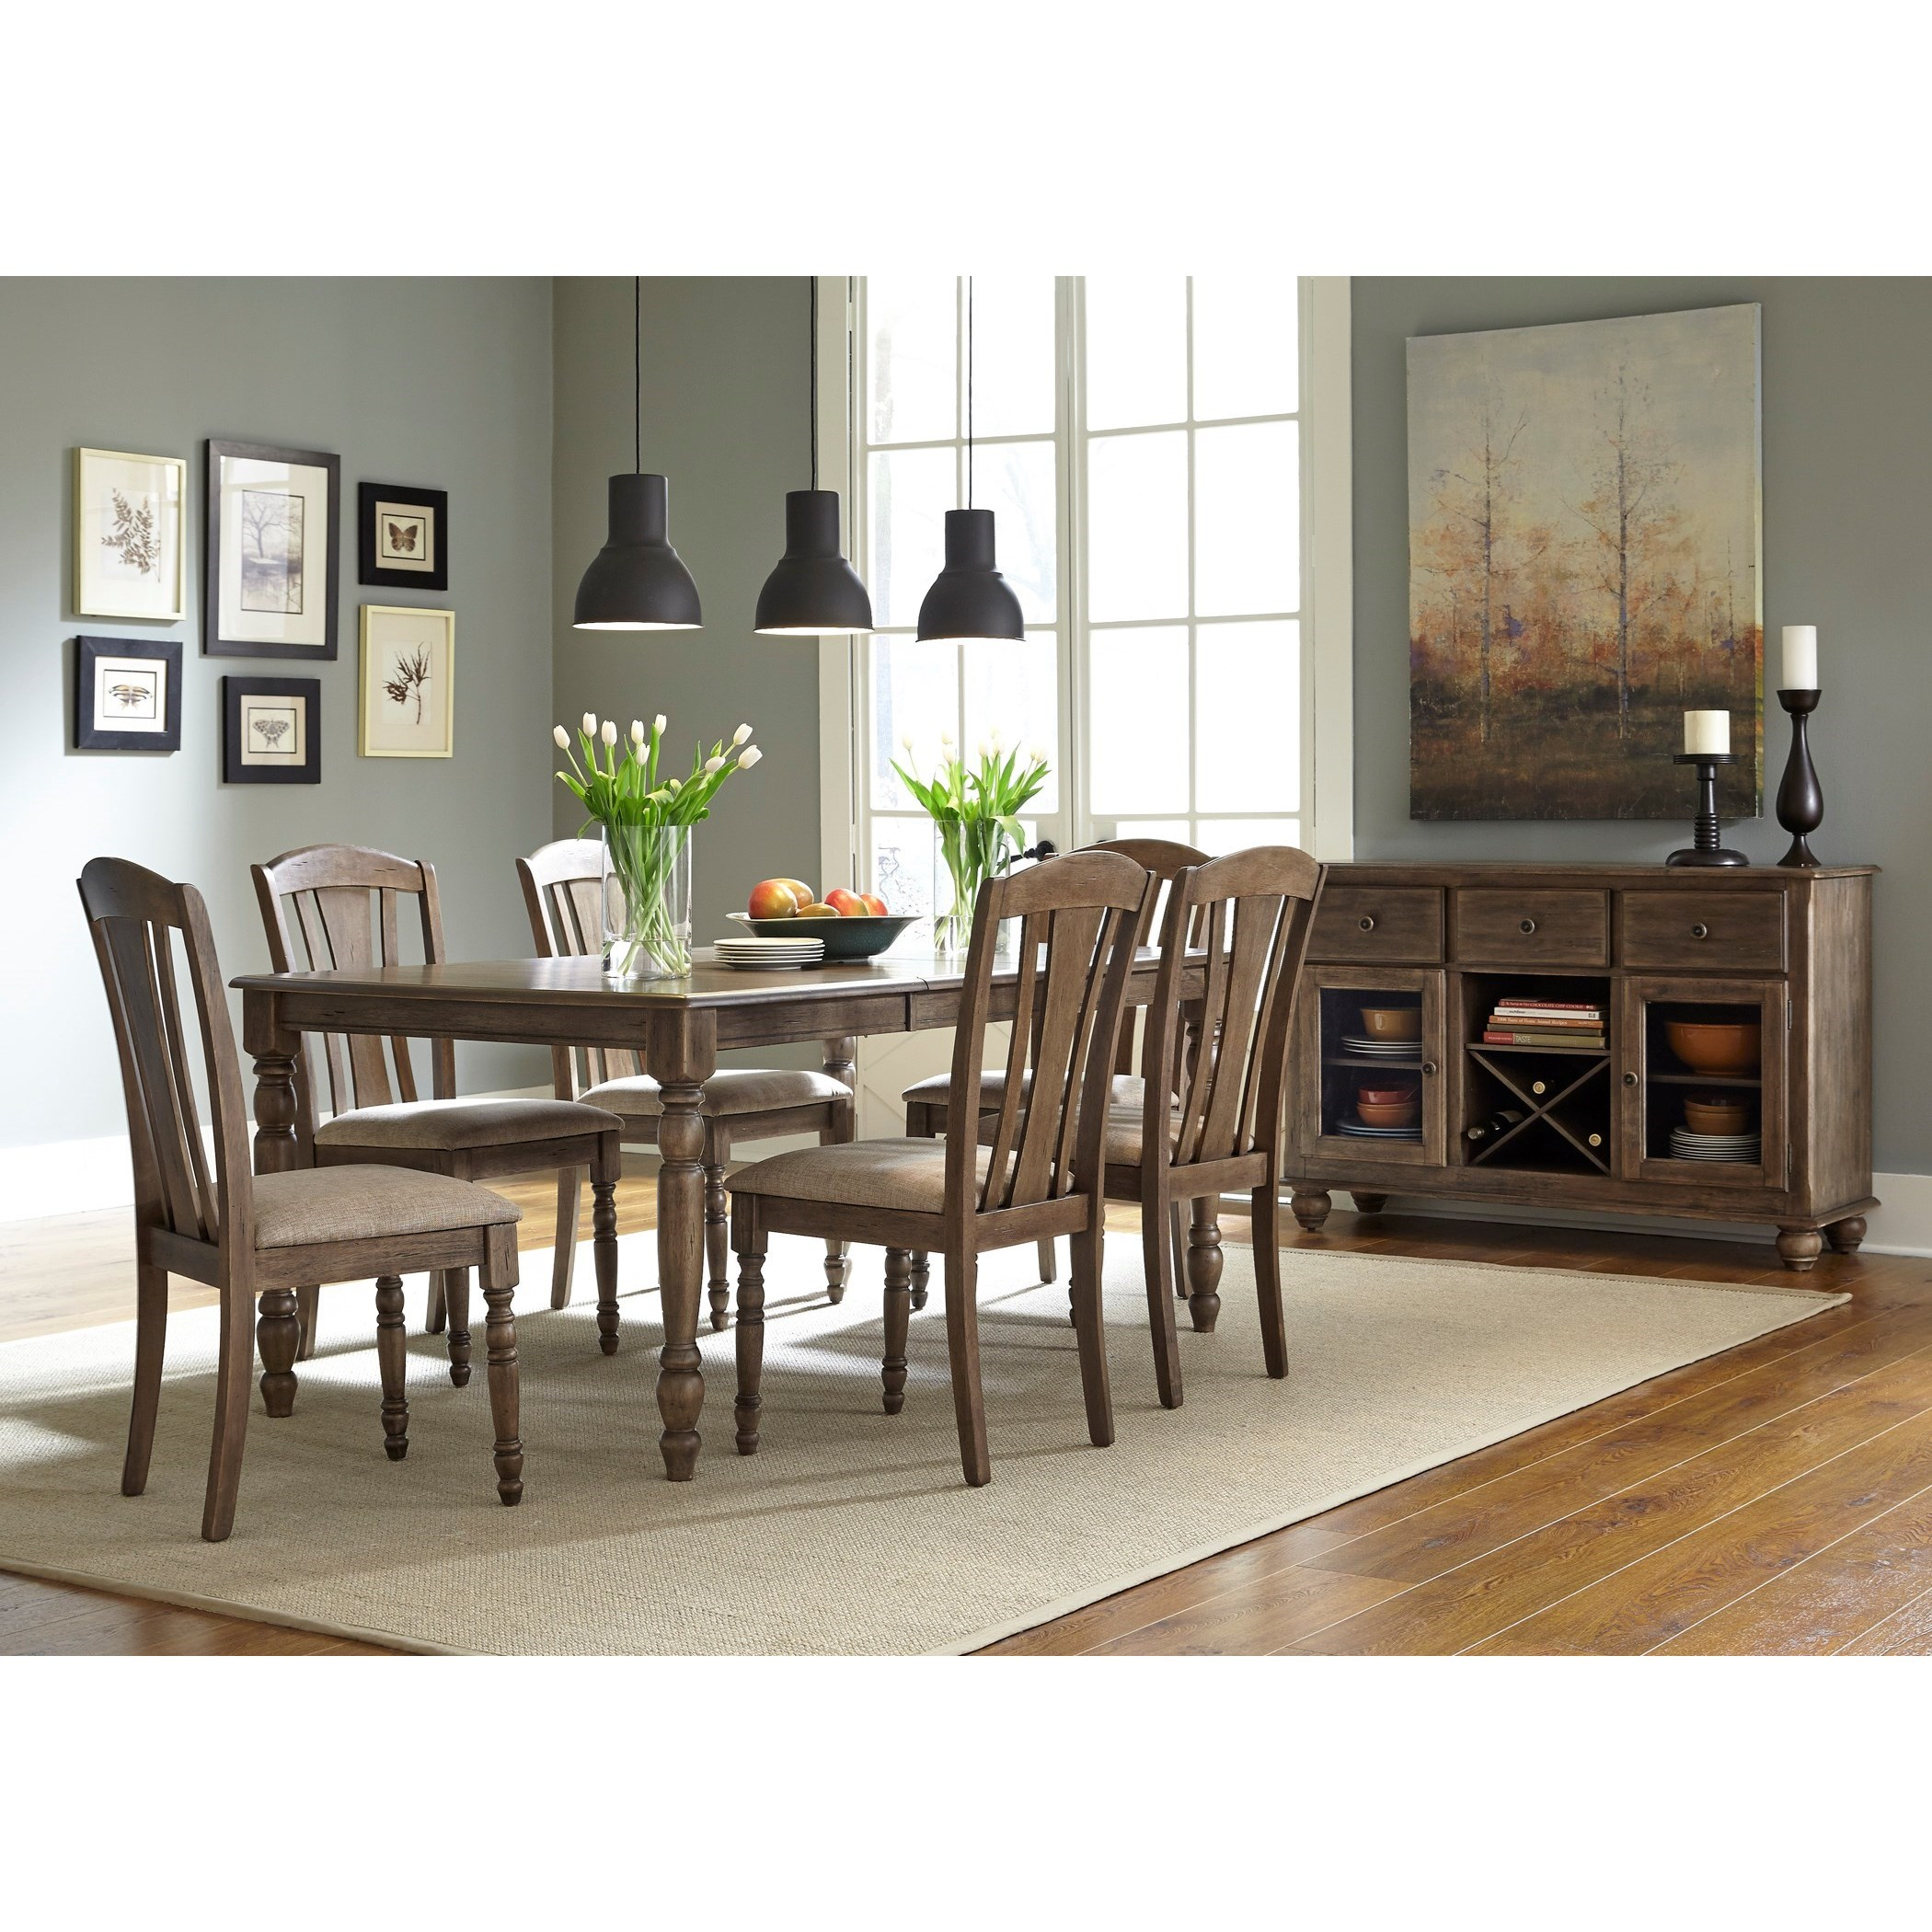 Informal Dining Room: Liberty Furniture Candlewood Casual Dining Room Group